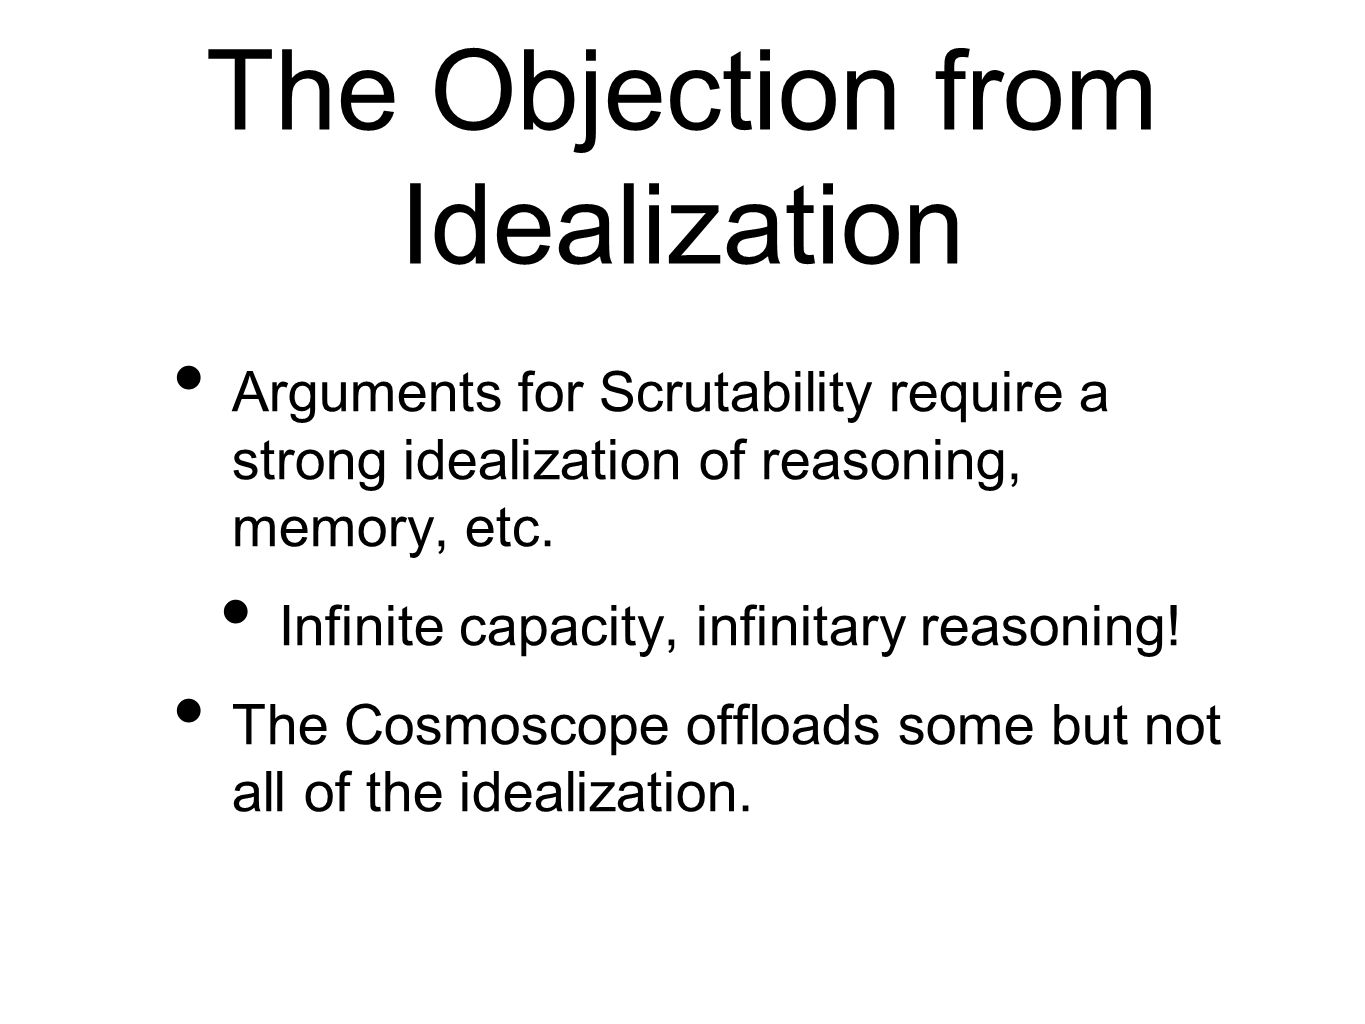 The Objection from Idealization Arguments for Scrutability require a strong idealization of reasoning, memory, etc.